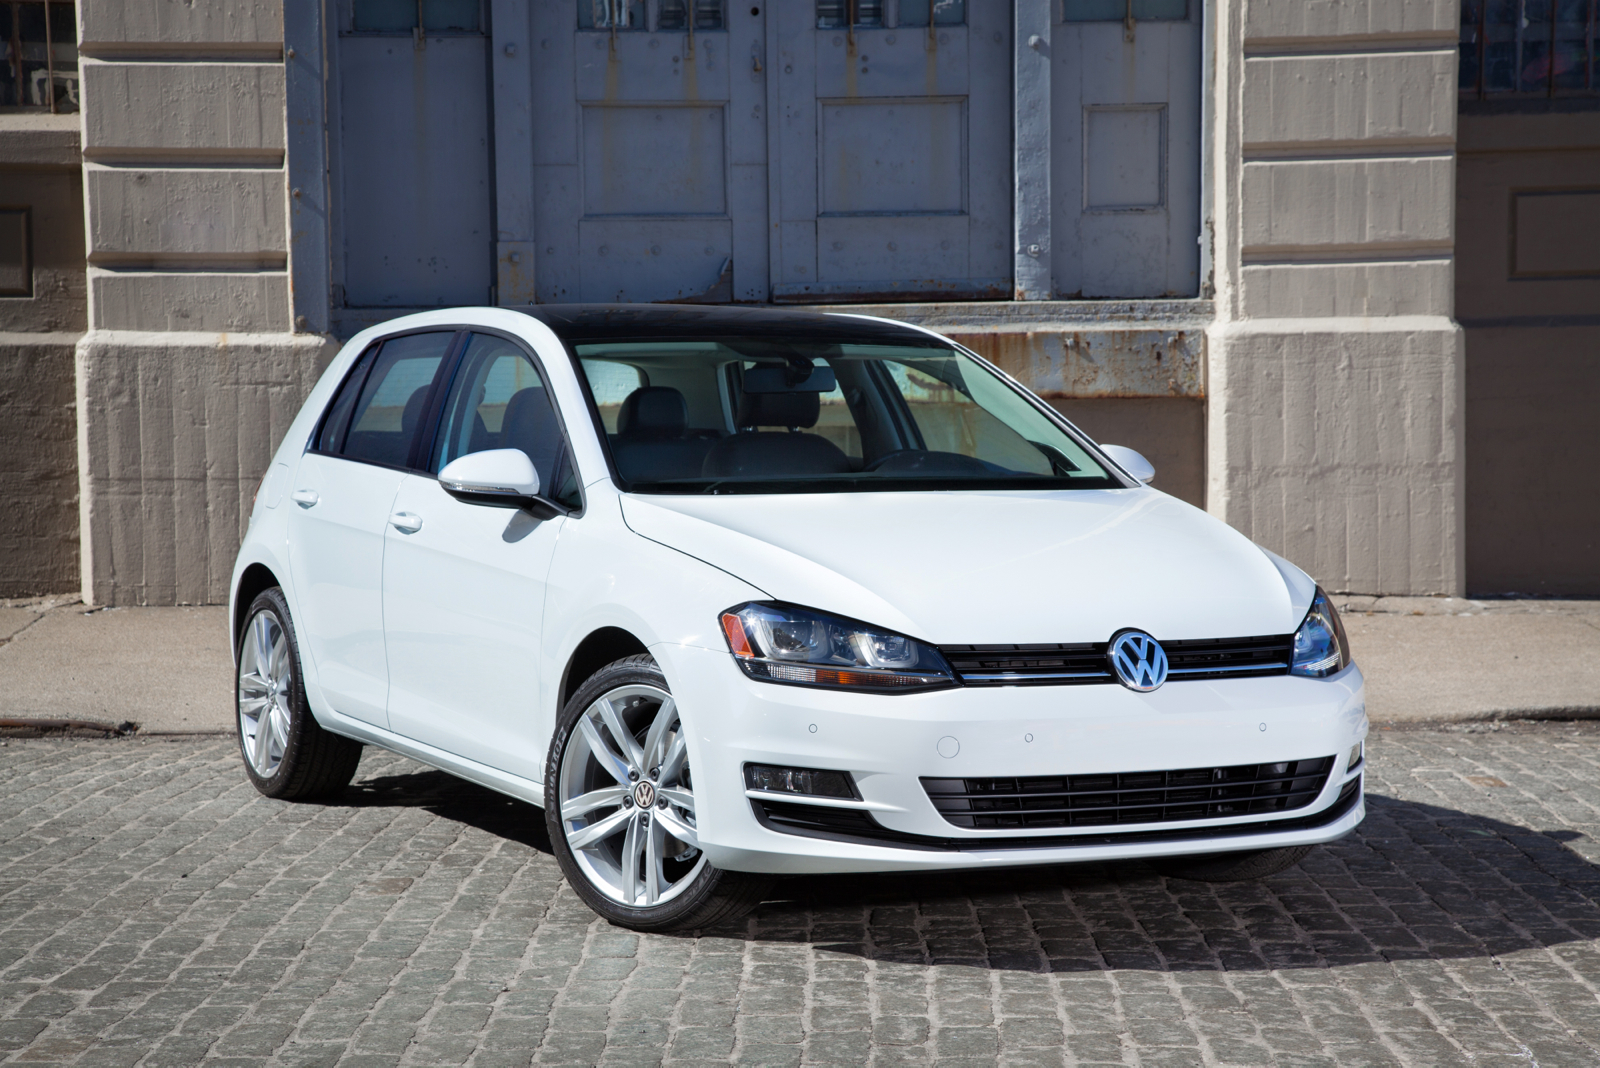 diesels models h them anyone approved volkswagen want sell repaired will golf to but news